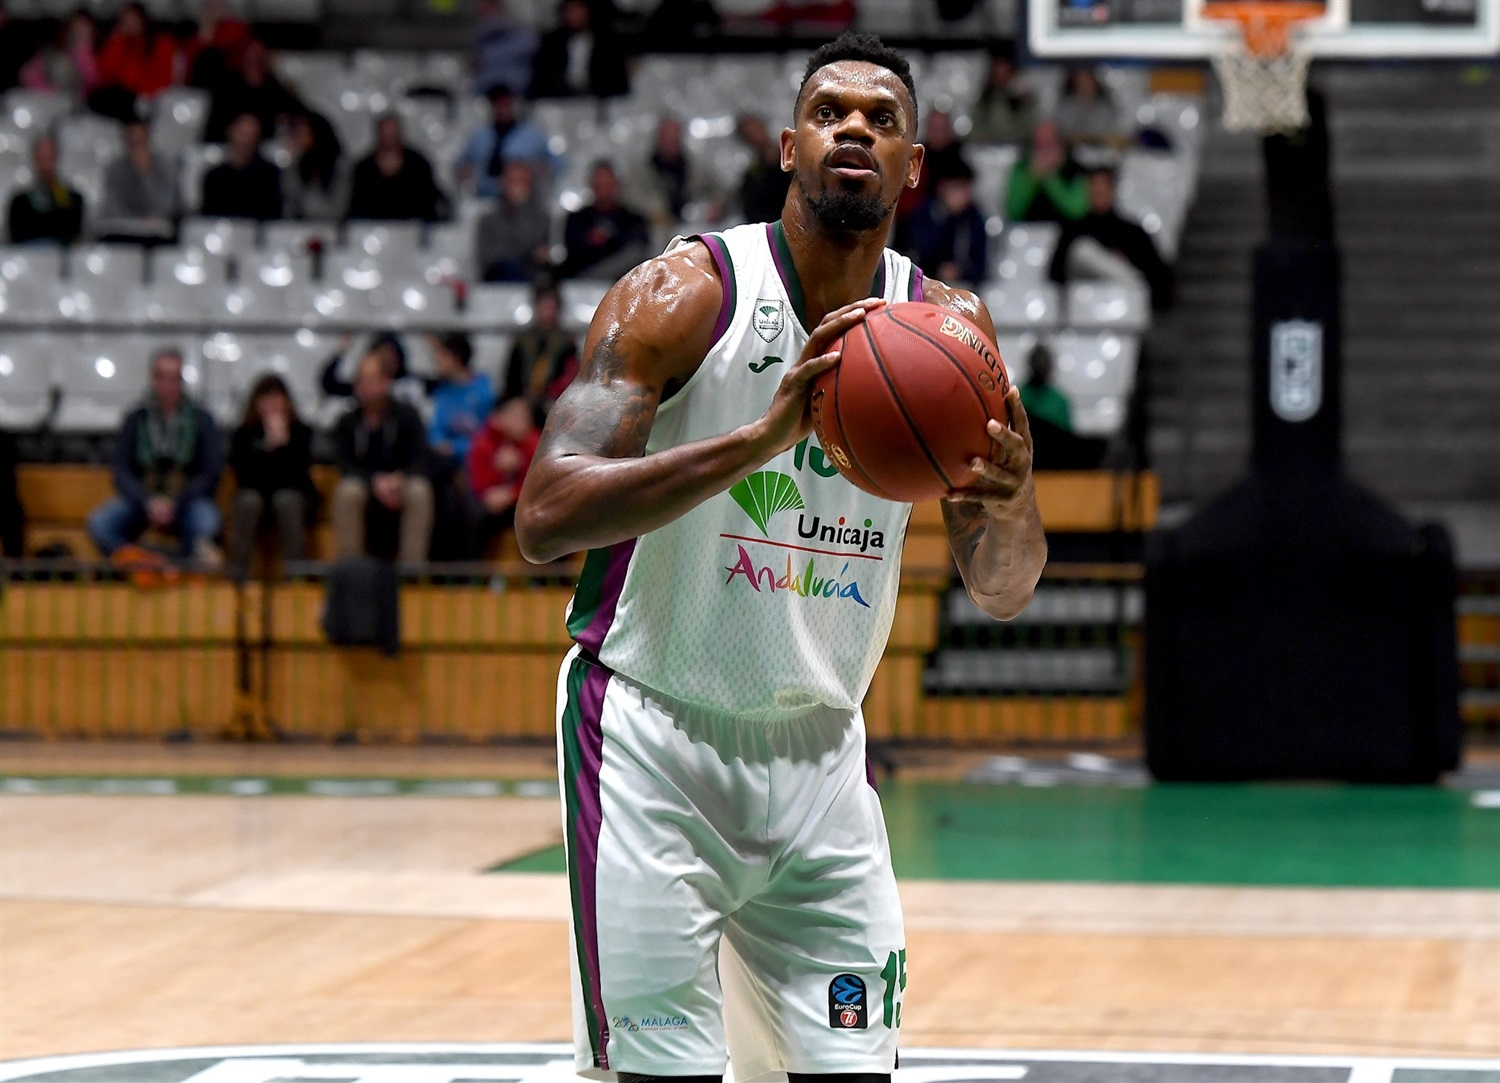 Frank Elegar - Unicaja Malaga (photo David Grau - Joventut) - EC19